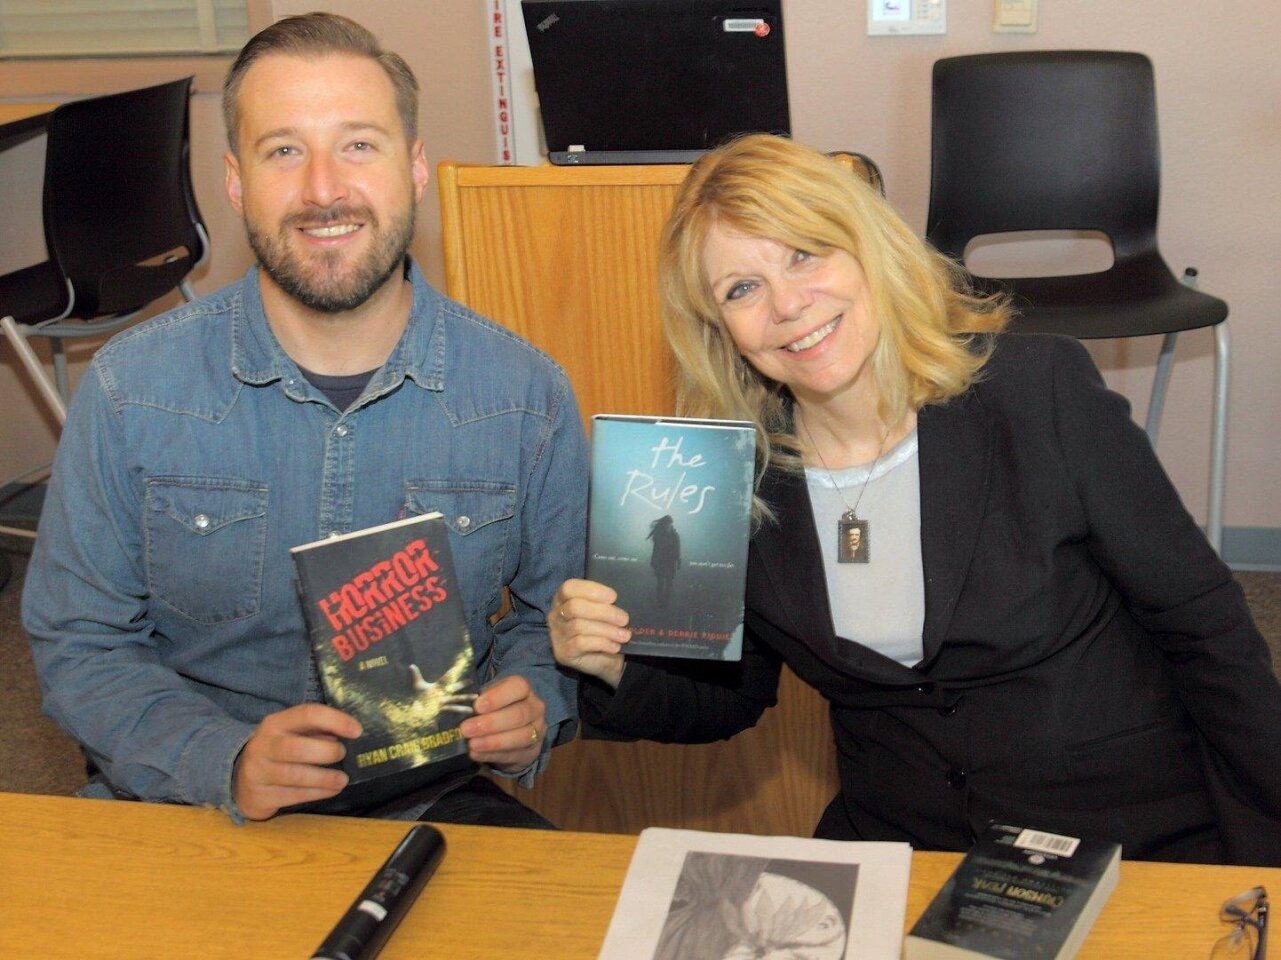 Authors Ryan Craig Bradford and Nancy Holder